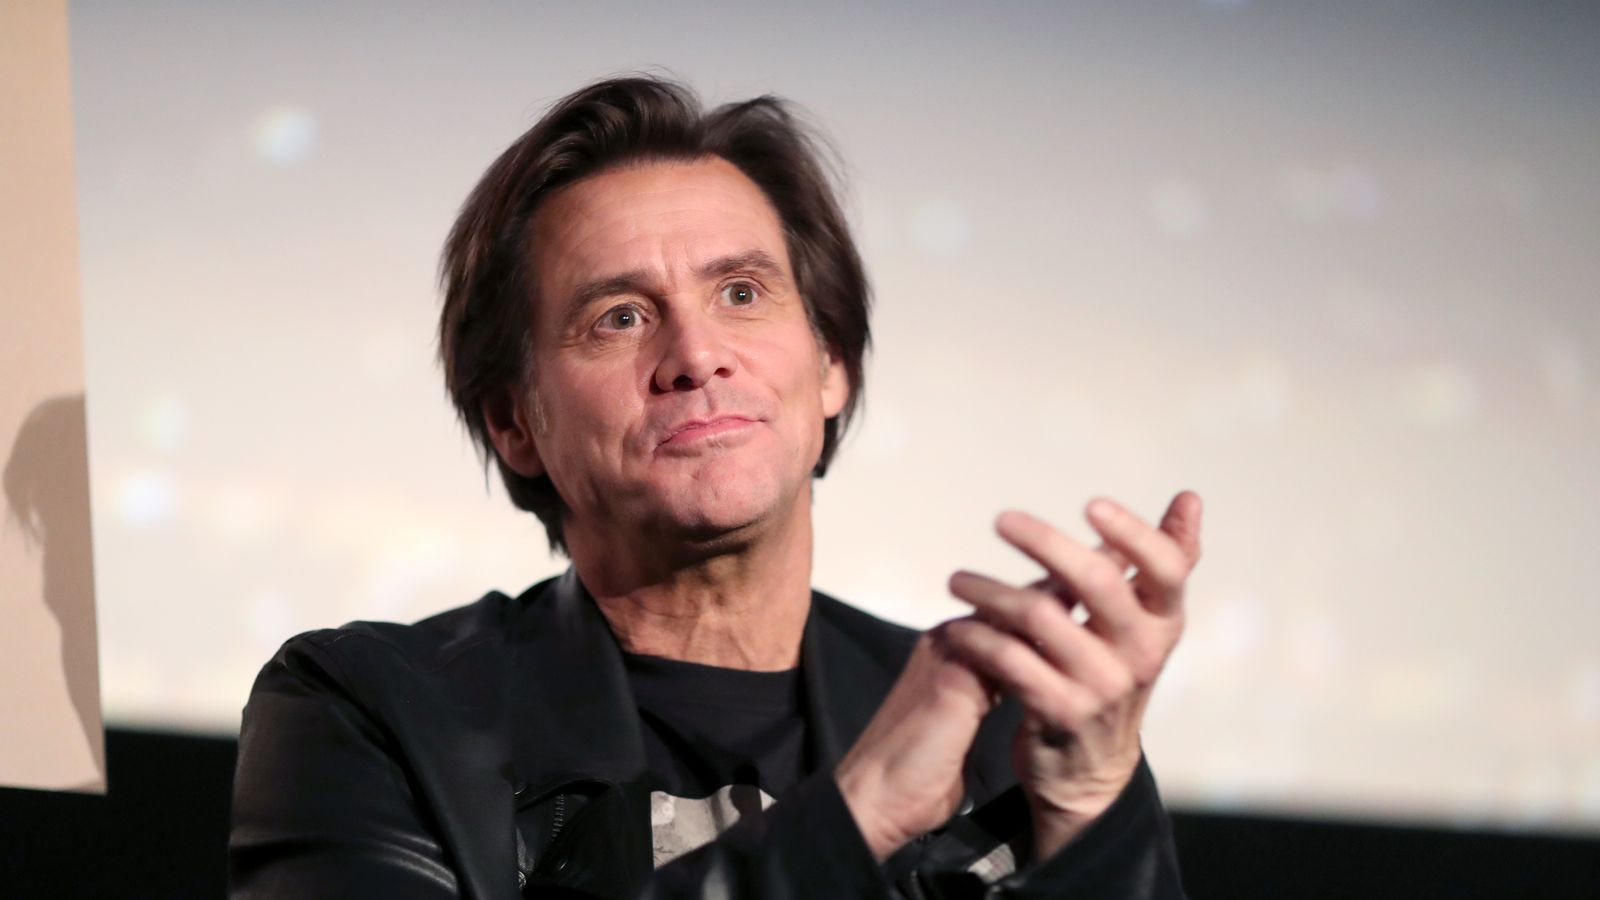 Is Jim Carrey's latest painting anti-Christian?